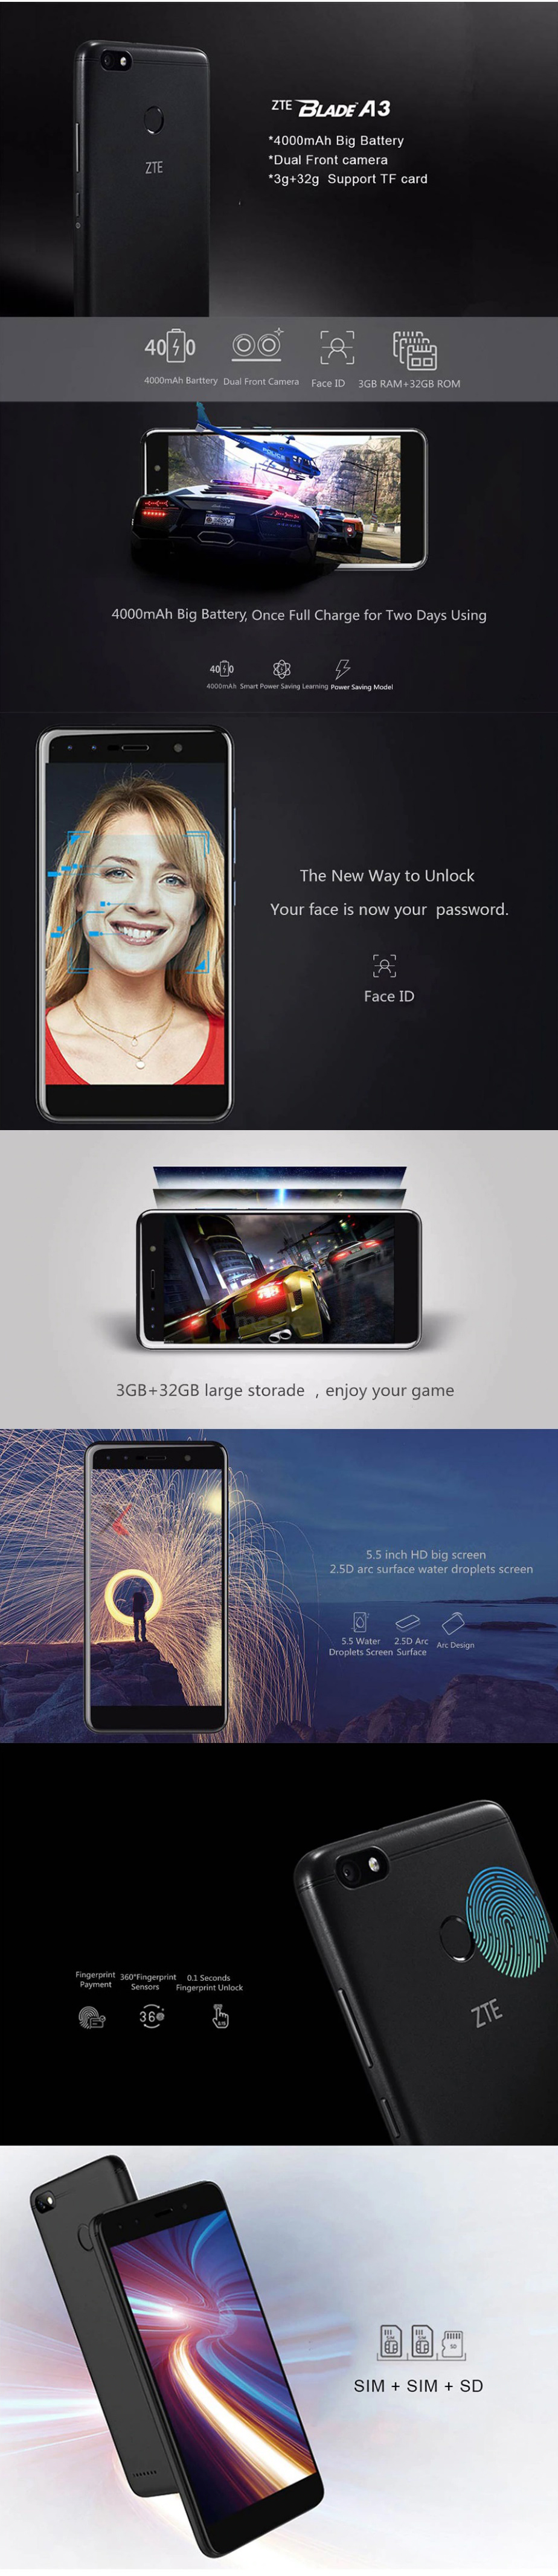 Details about ZTE BLADE A3 3gb 32gb Quad Core Fingerprint 13mp 5 5 Inch  Android 4g Smartphone